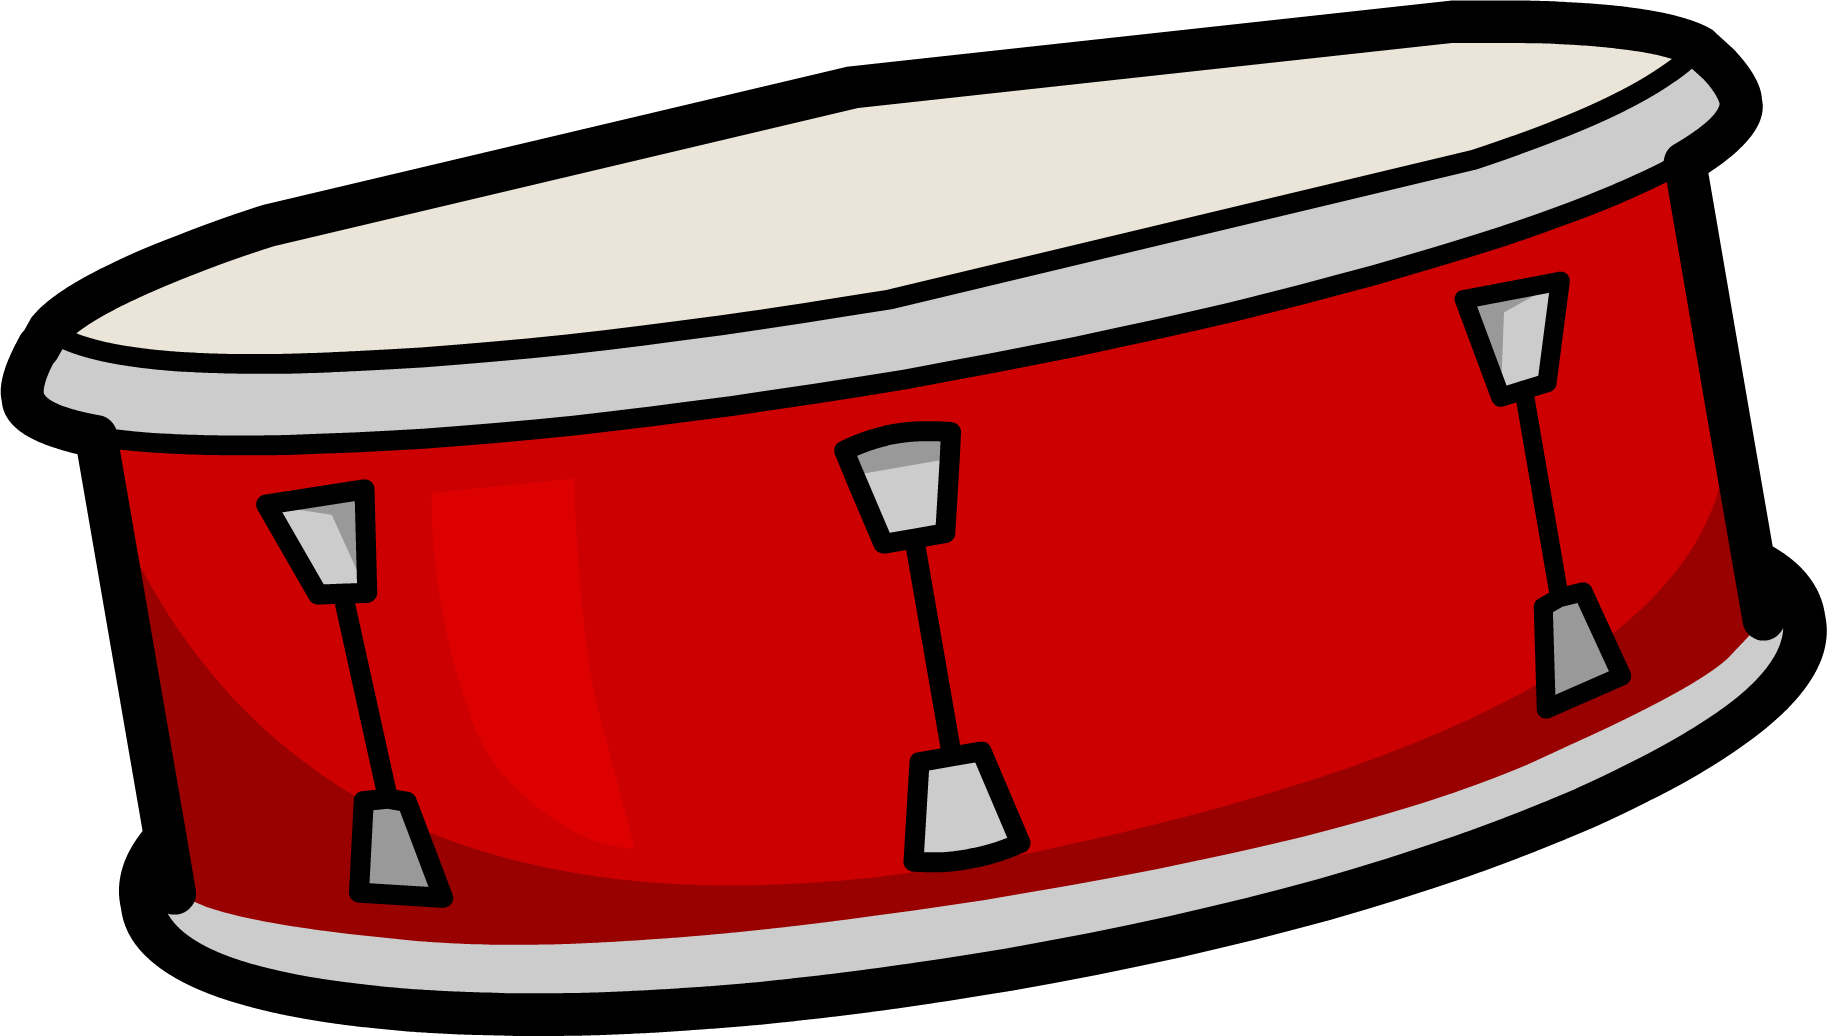 image snare drum png club penguin wiki fandom powered by wikia rh clubpenguin wikia com  marching snare drum clipart